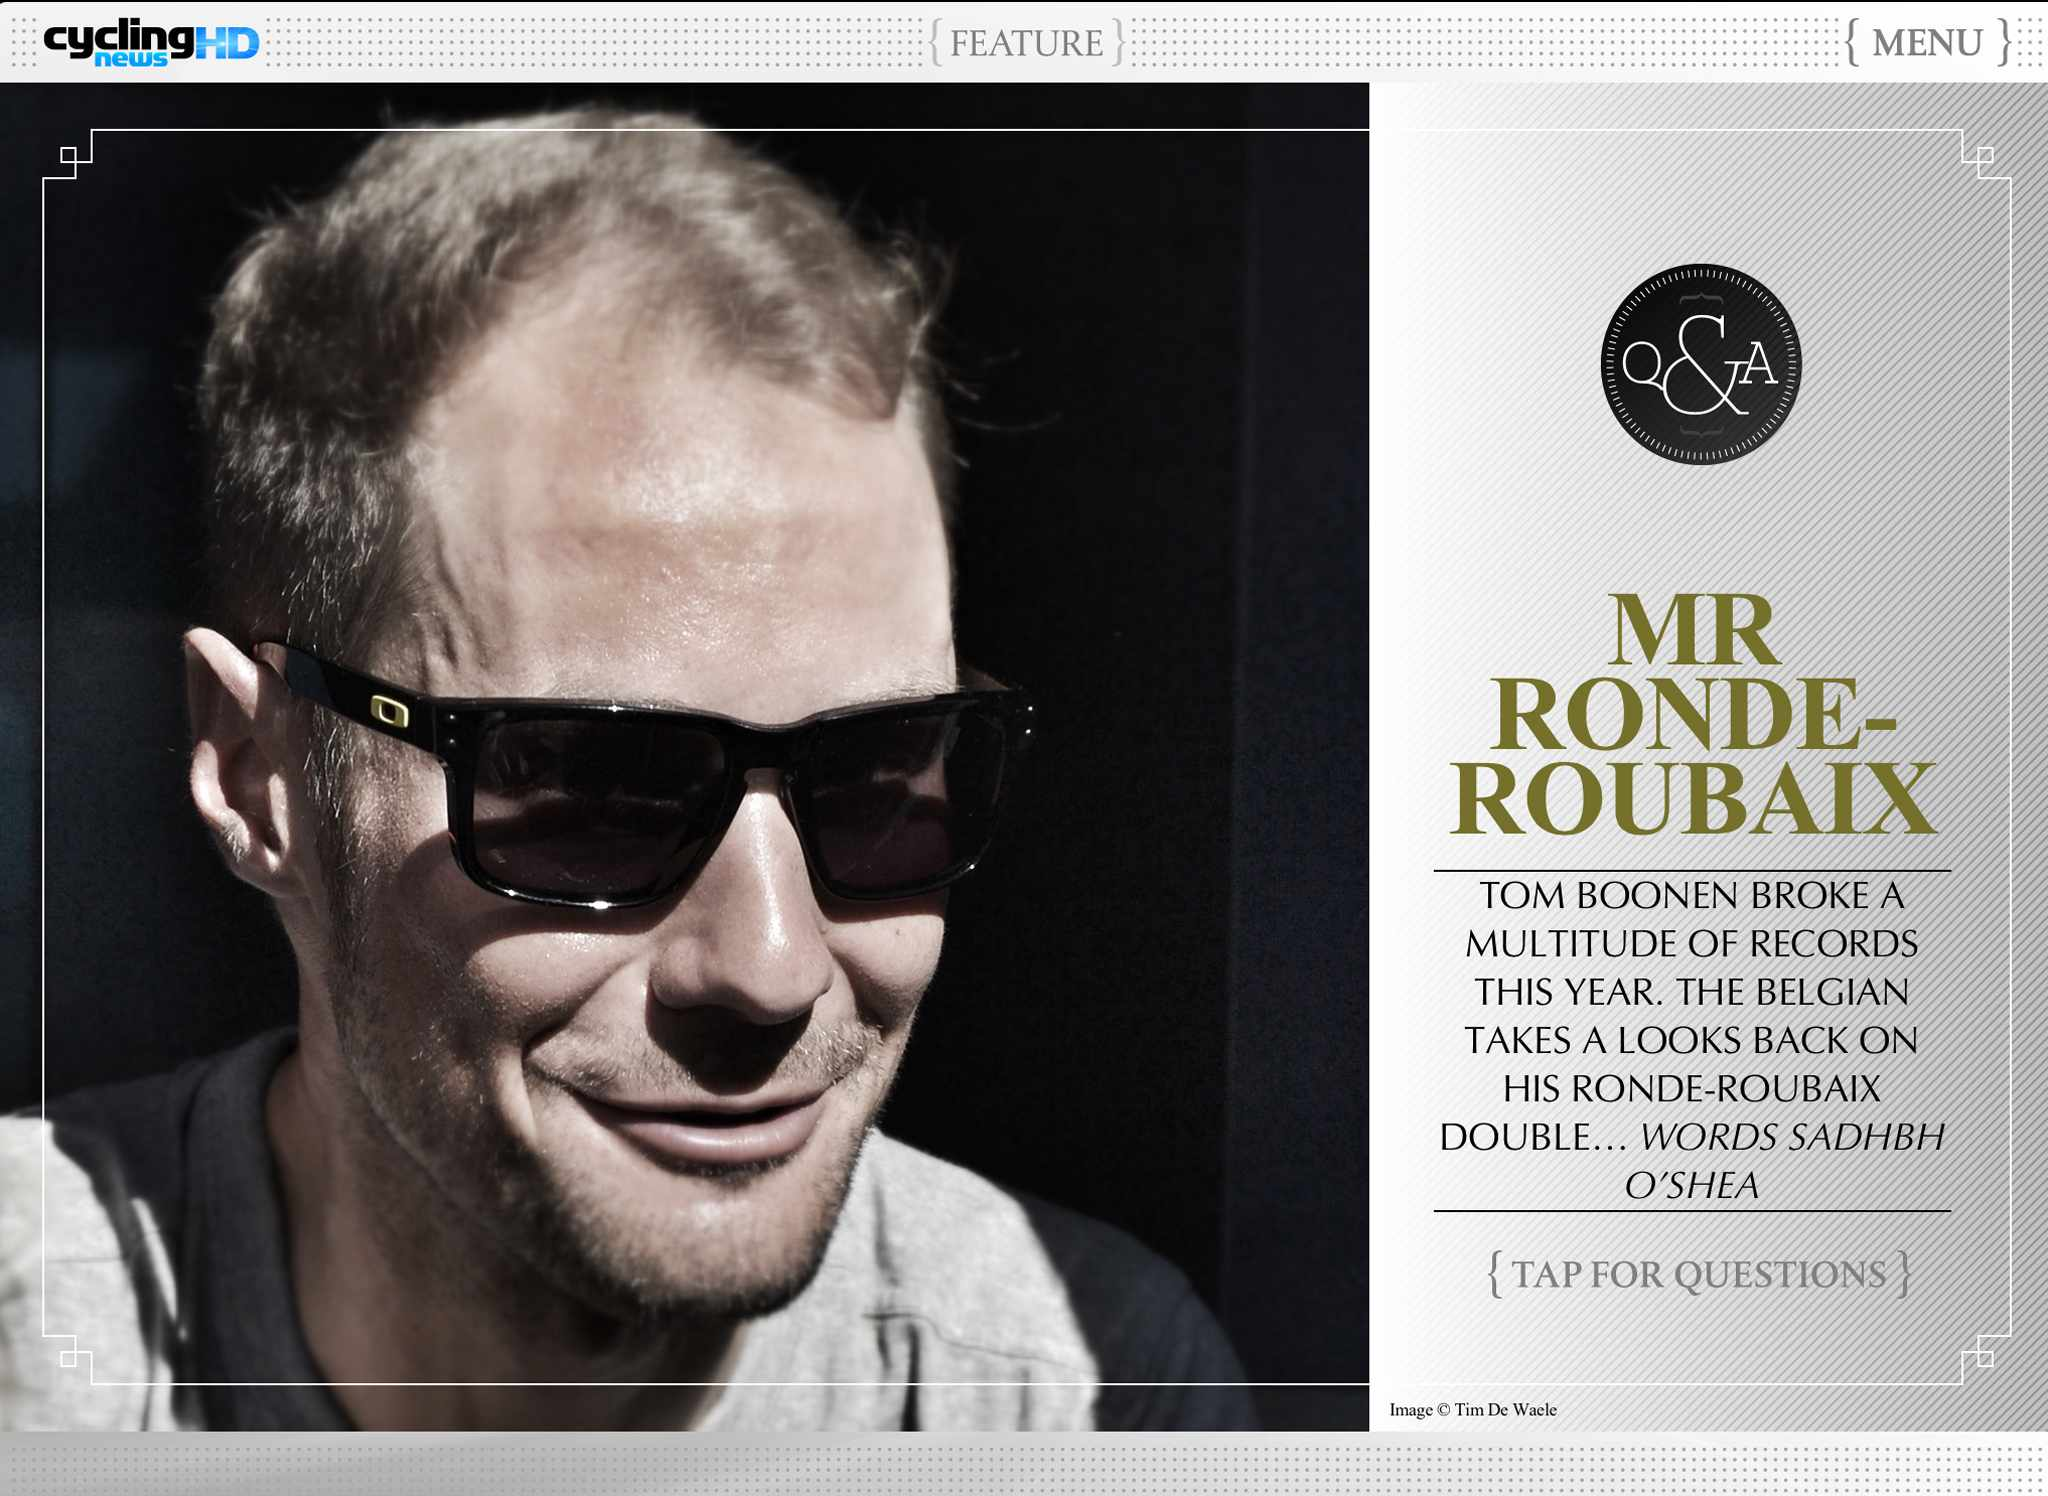 The latest issue of CN HD features an exclusive Tom Boonen interview